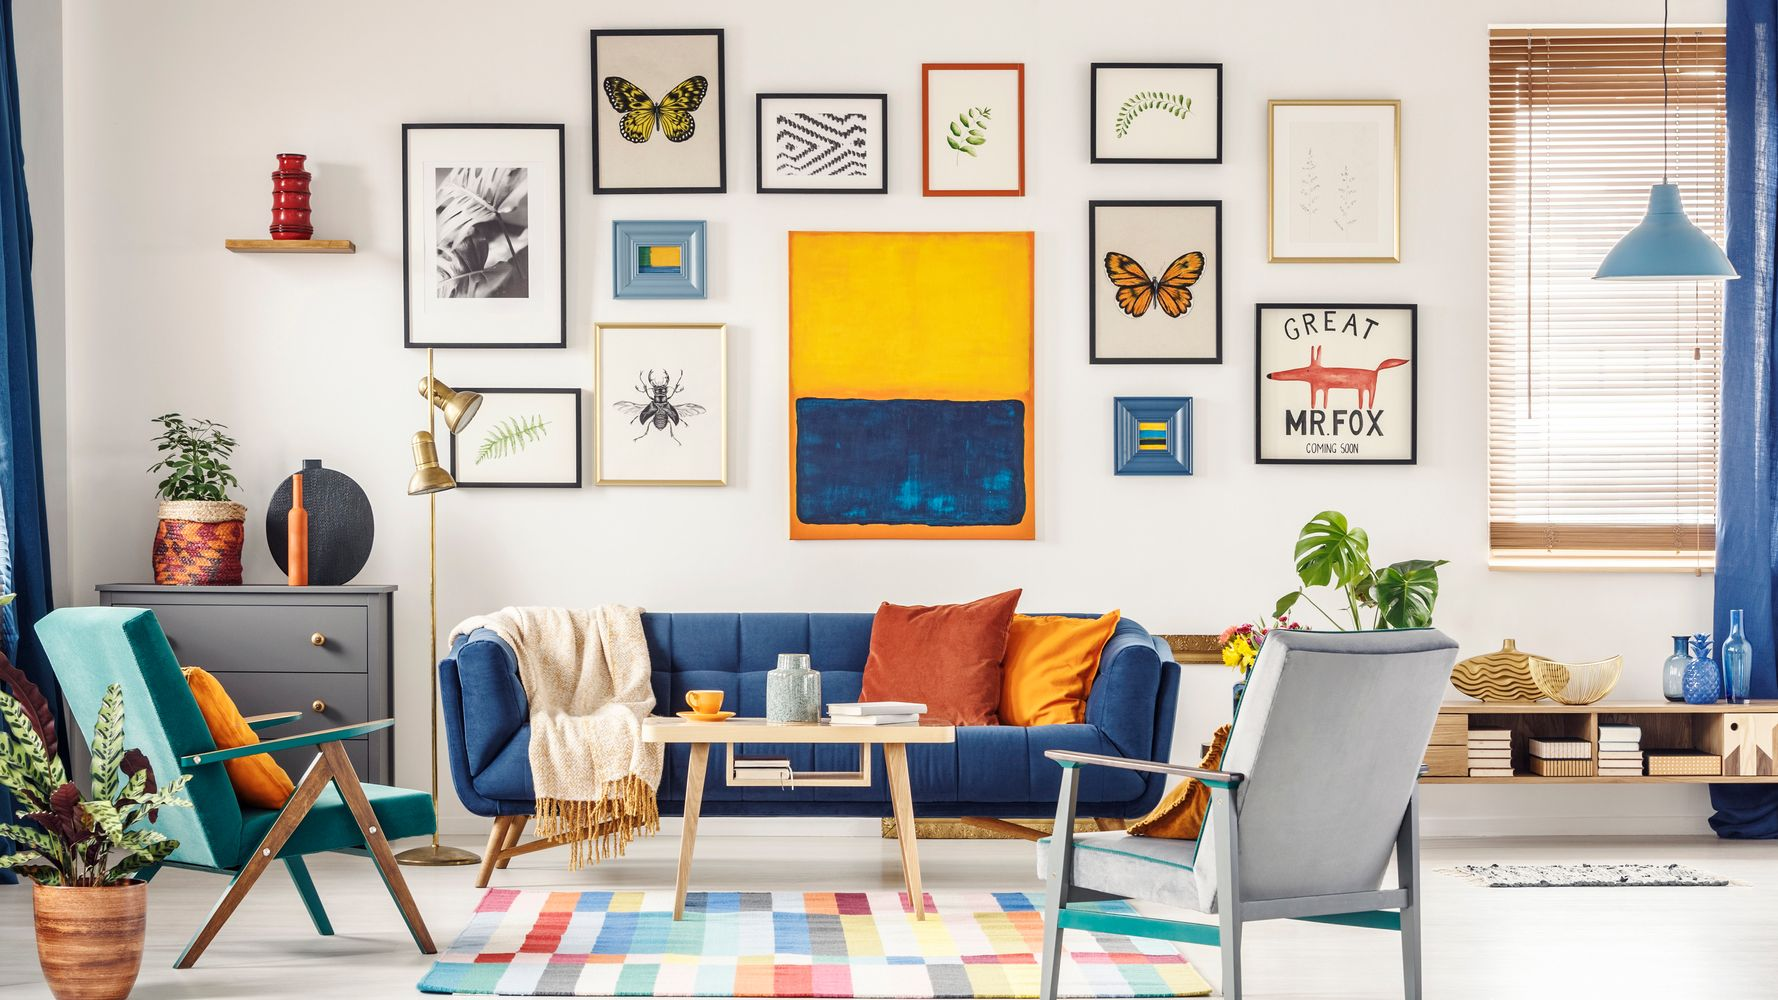 How To Create A Gallery Wall Interior Designers Share Their Top Tips Huffpost Uk Life